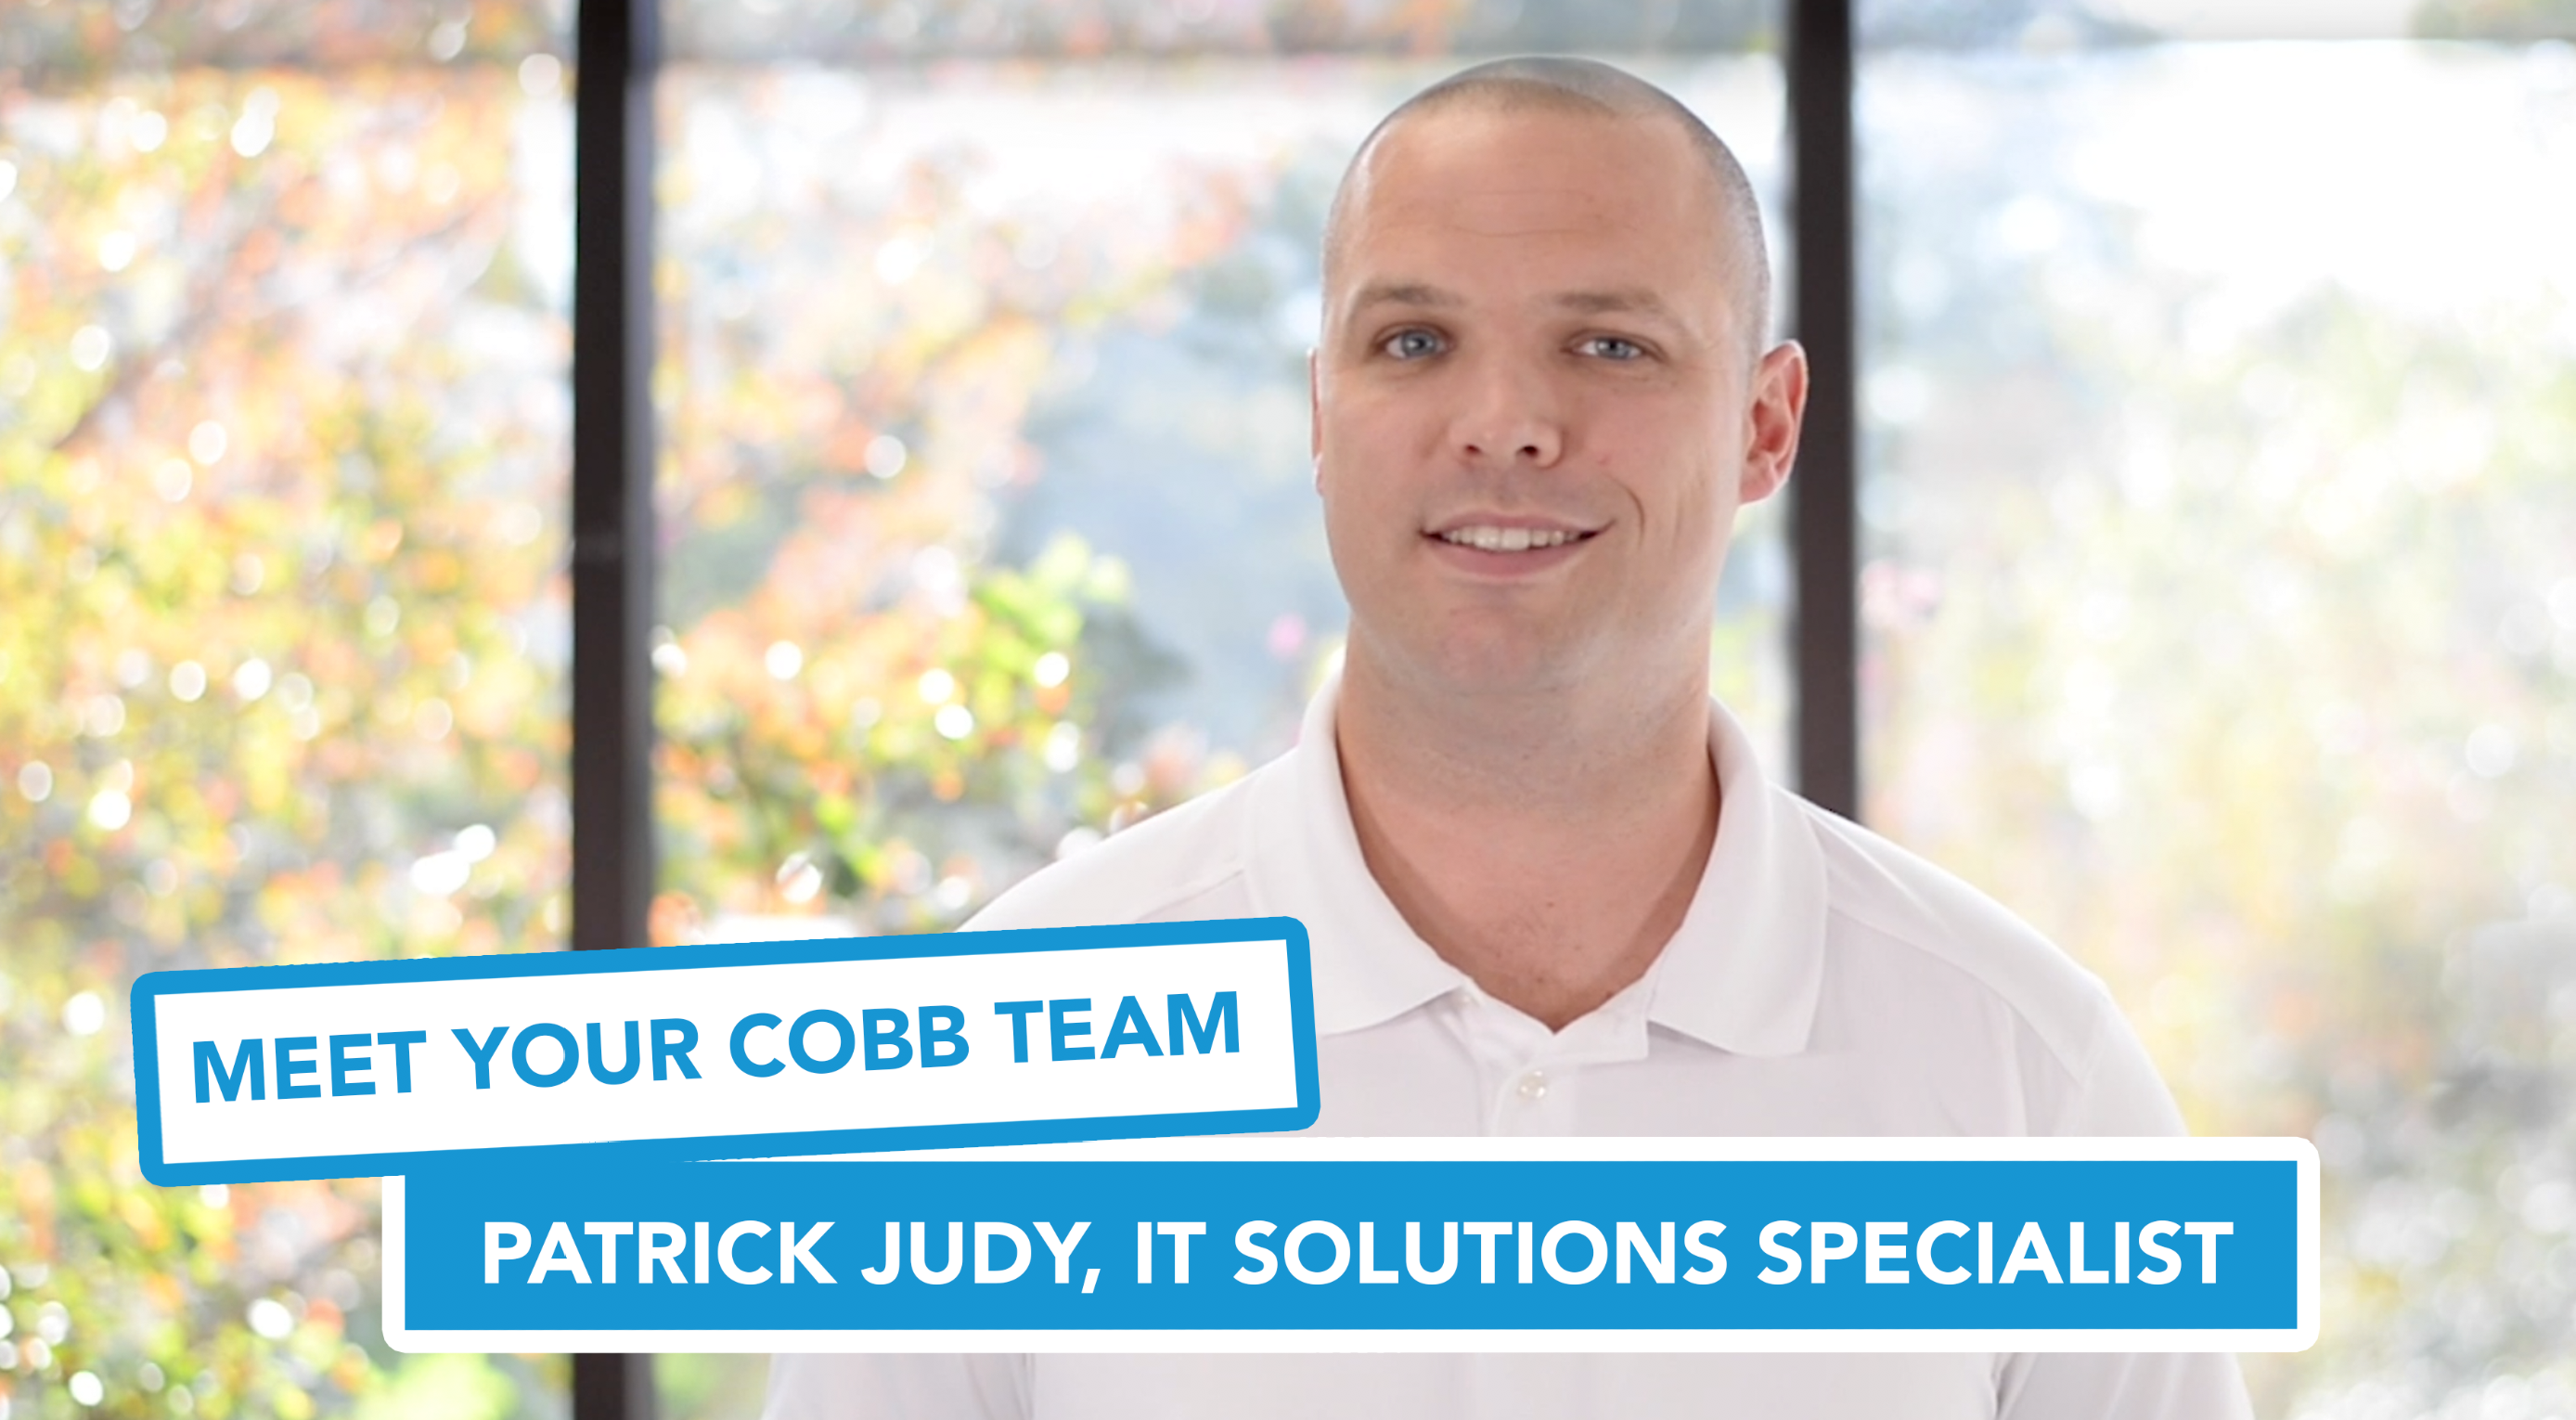 Meet Your Cobb Team: Patrick Judy, IT Solutions Specialist